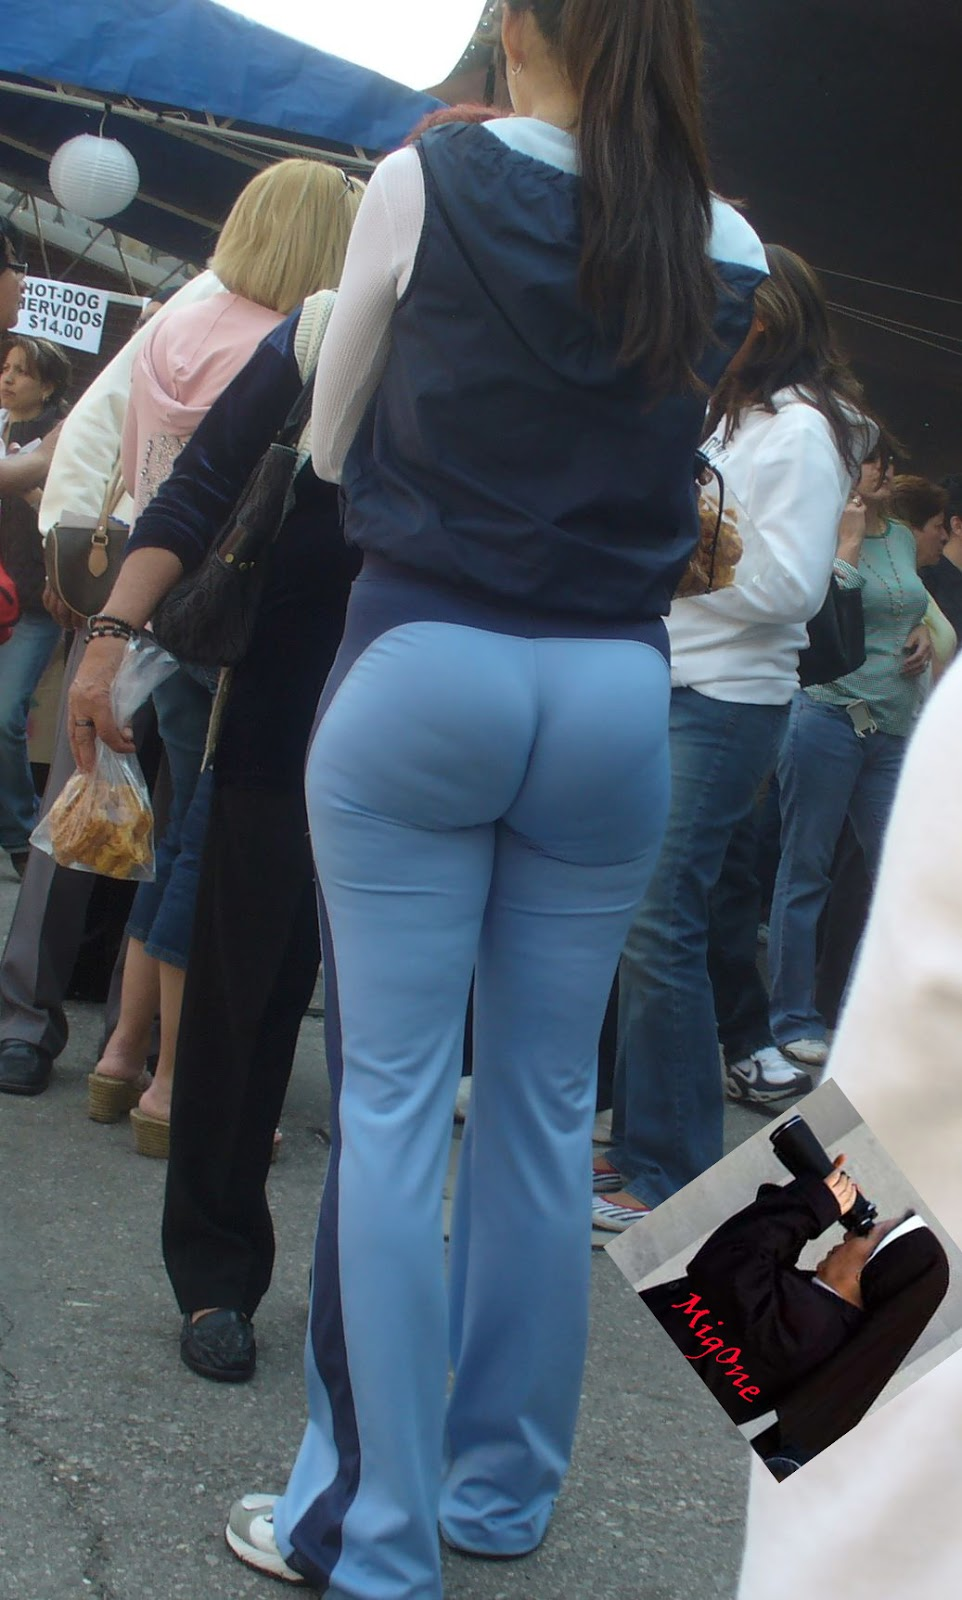 Big ass on the street